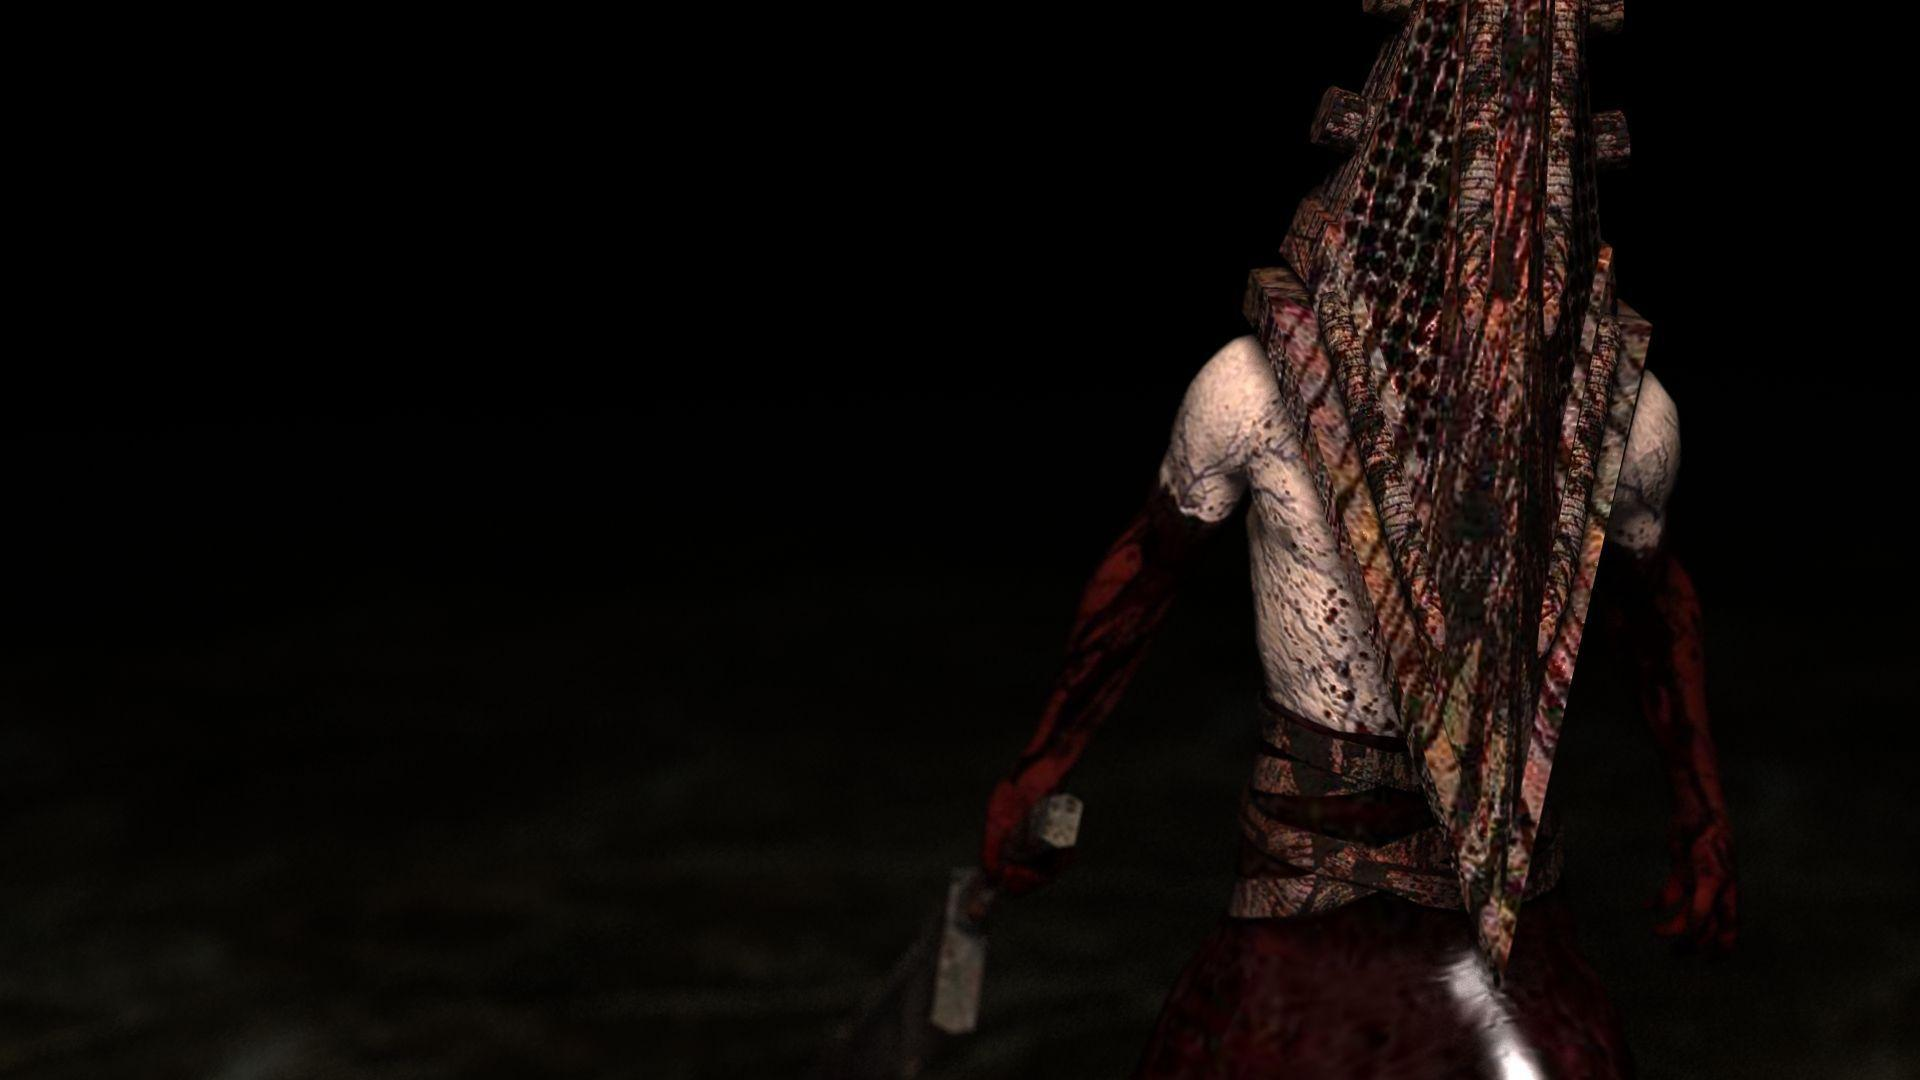 Silent Hill Pyramid Head Wallpapers - Wallpaper Cave